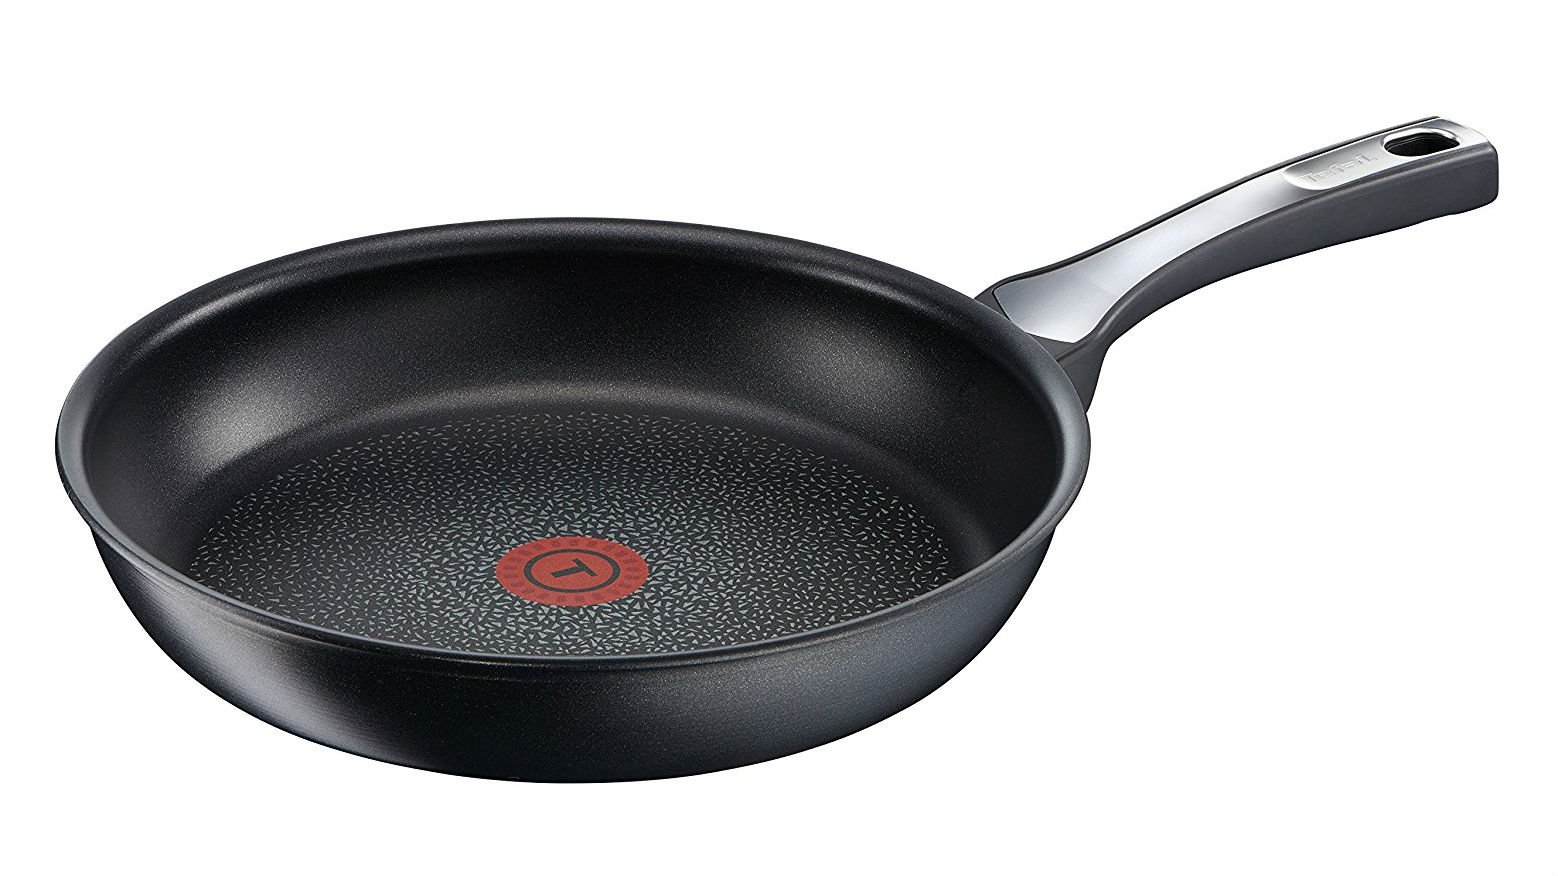 best frying pan 2018 the best non stick frying pans from tefal le creuset and darbymade. Black Bedroom Furniture Sets. Home Design Ideas